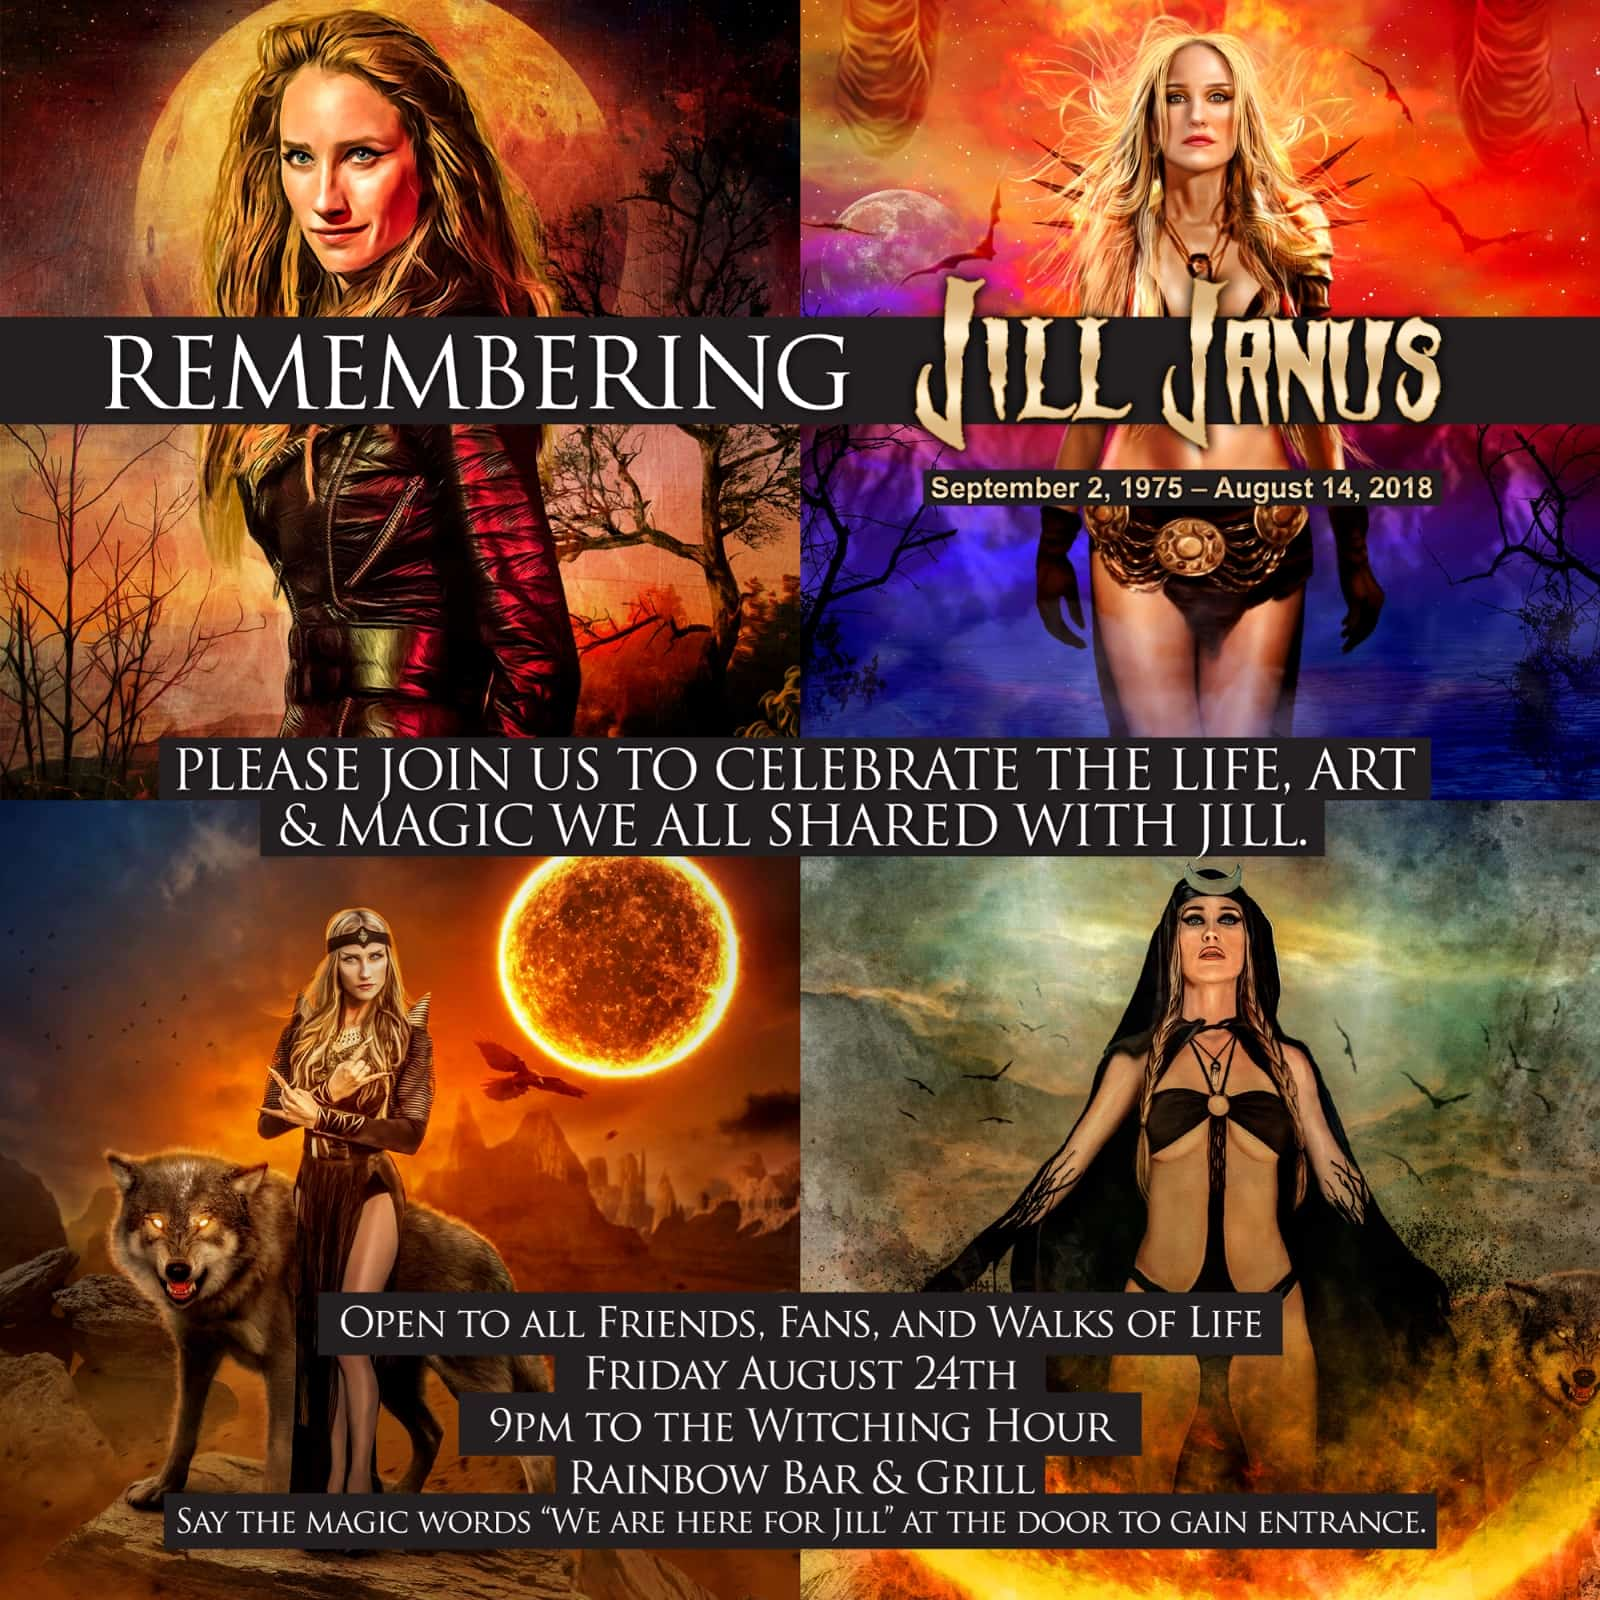 Remembering Jill Janus